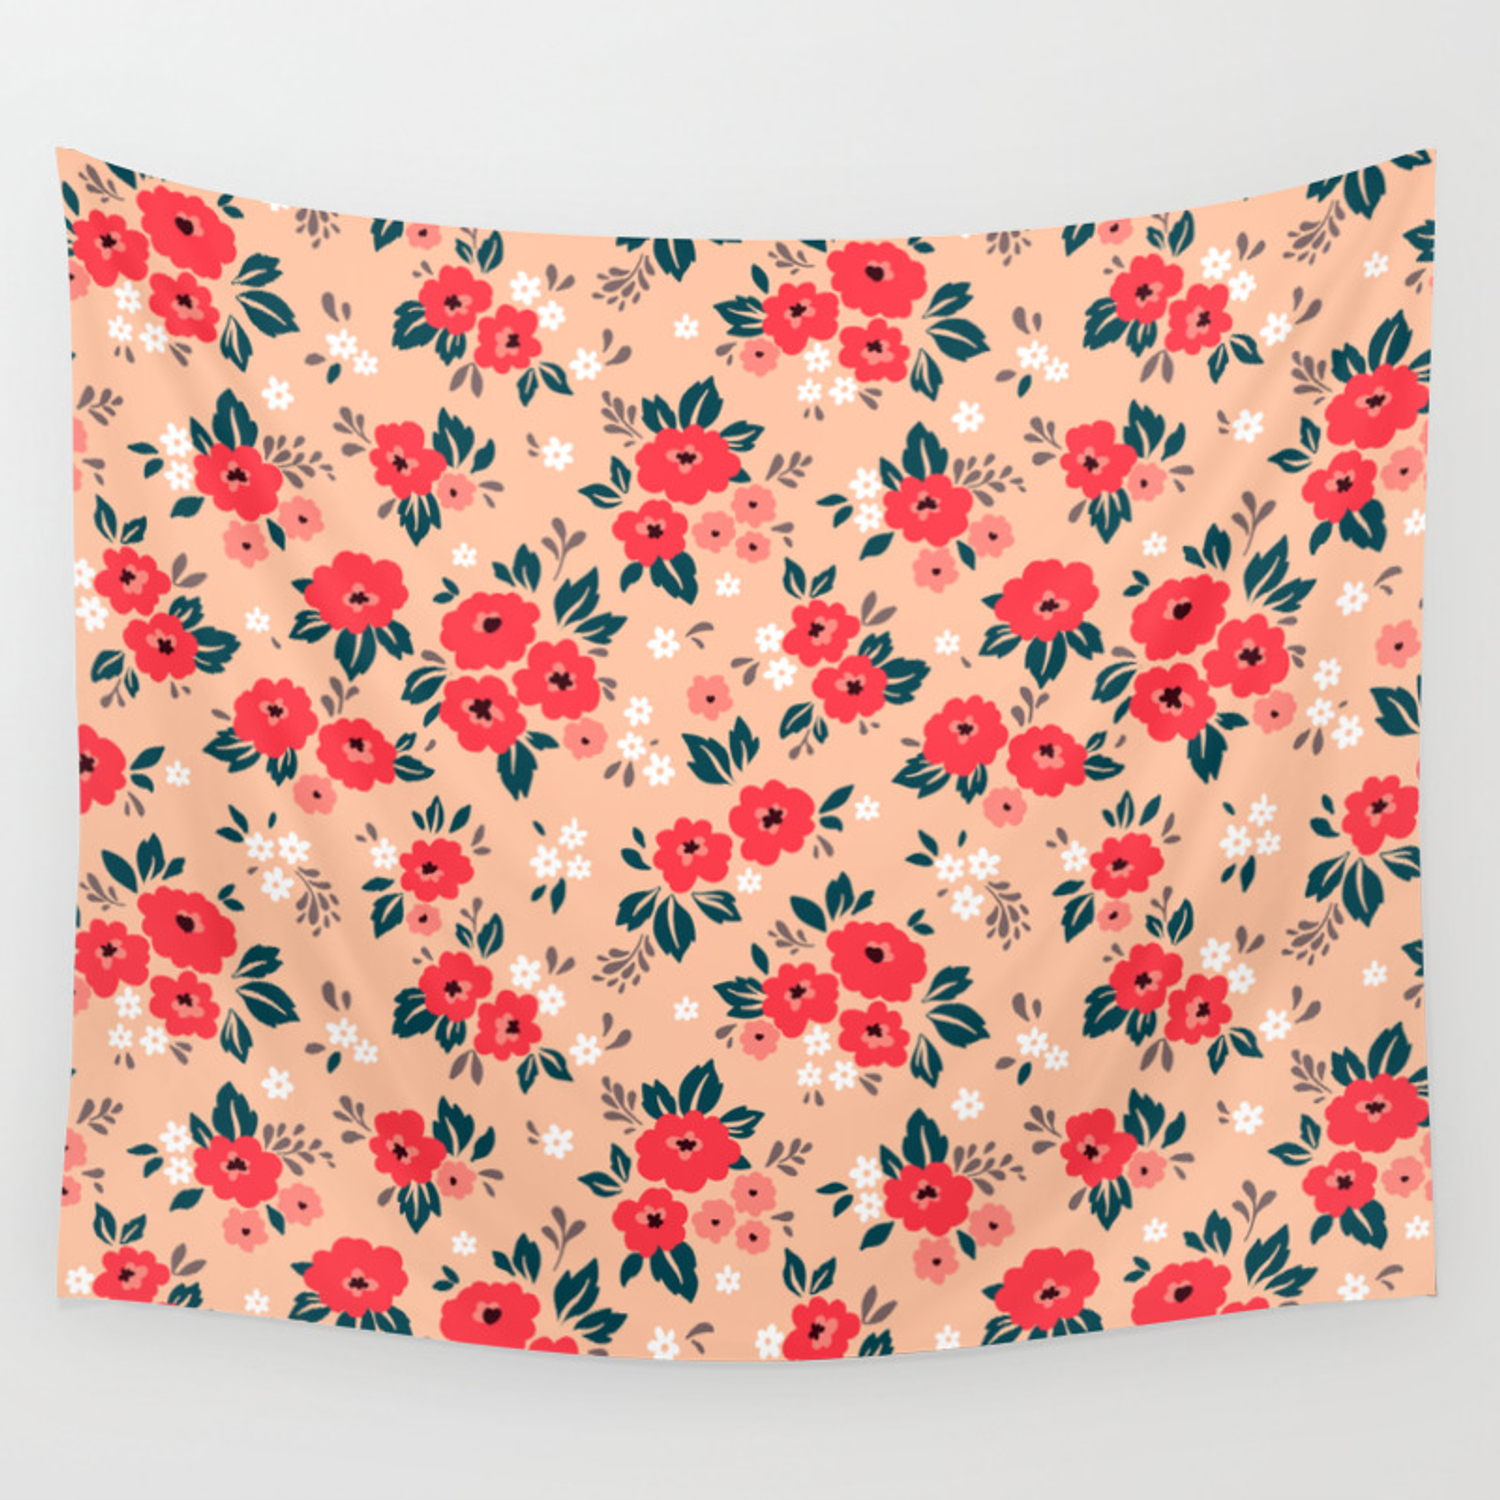 06 Ditsy Floral Pattern Peache Background Red And White Flowers